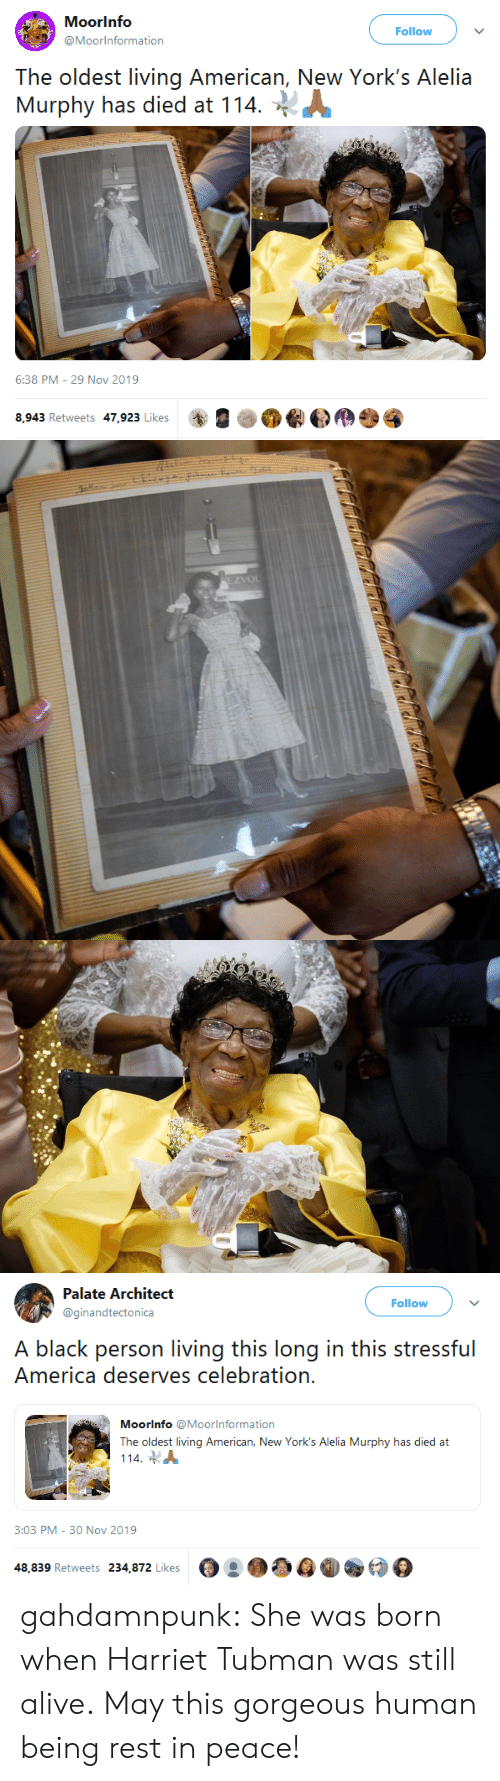 Deserves: Moorinfo  Follow  @Moorinformation  The oldest living American, New York's Alelia  Murphy has died at 114  6:38 PM - 29 Nov 2019  8,943 Retweets 47,923 Likes   EZVOL   Palate Architect  Follow  @ginandtectonica  A black person living this long in this stressful  America deserves celebration.  Moorinfo @Moorlnformation  The oldest living American, New York's Alelia Murphy has died at  114  3:03 PM - 30 Nov 2019  48,839 Retweets 234,872 Likes gahdamnpunk: She was born when Harriet Tubman was still alive. May this gorgeous human being rest in peace!